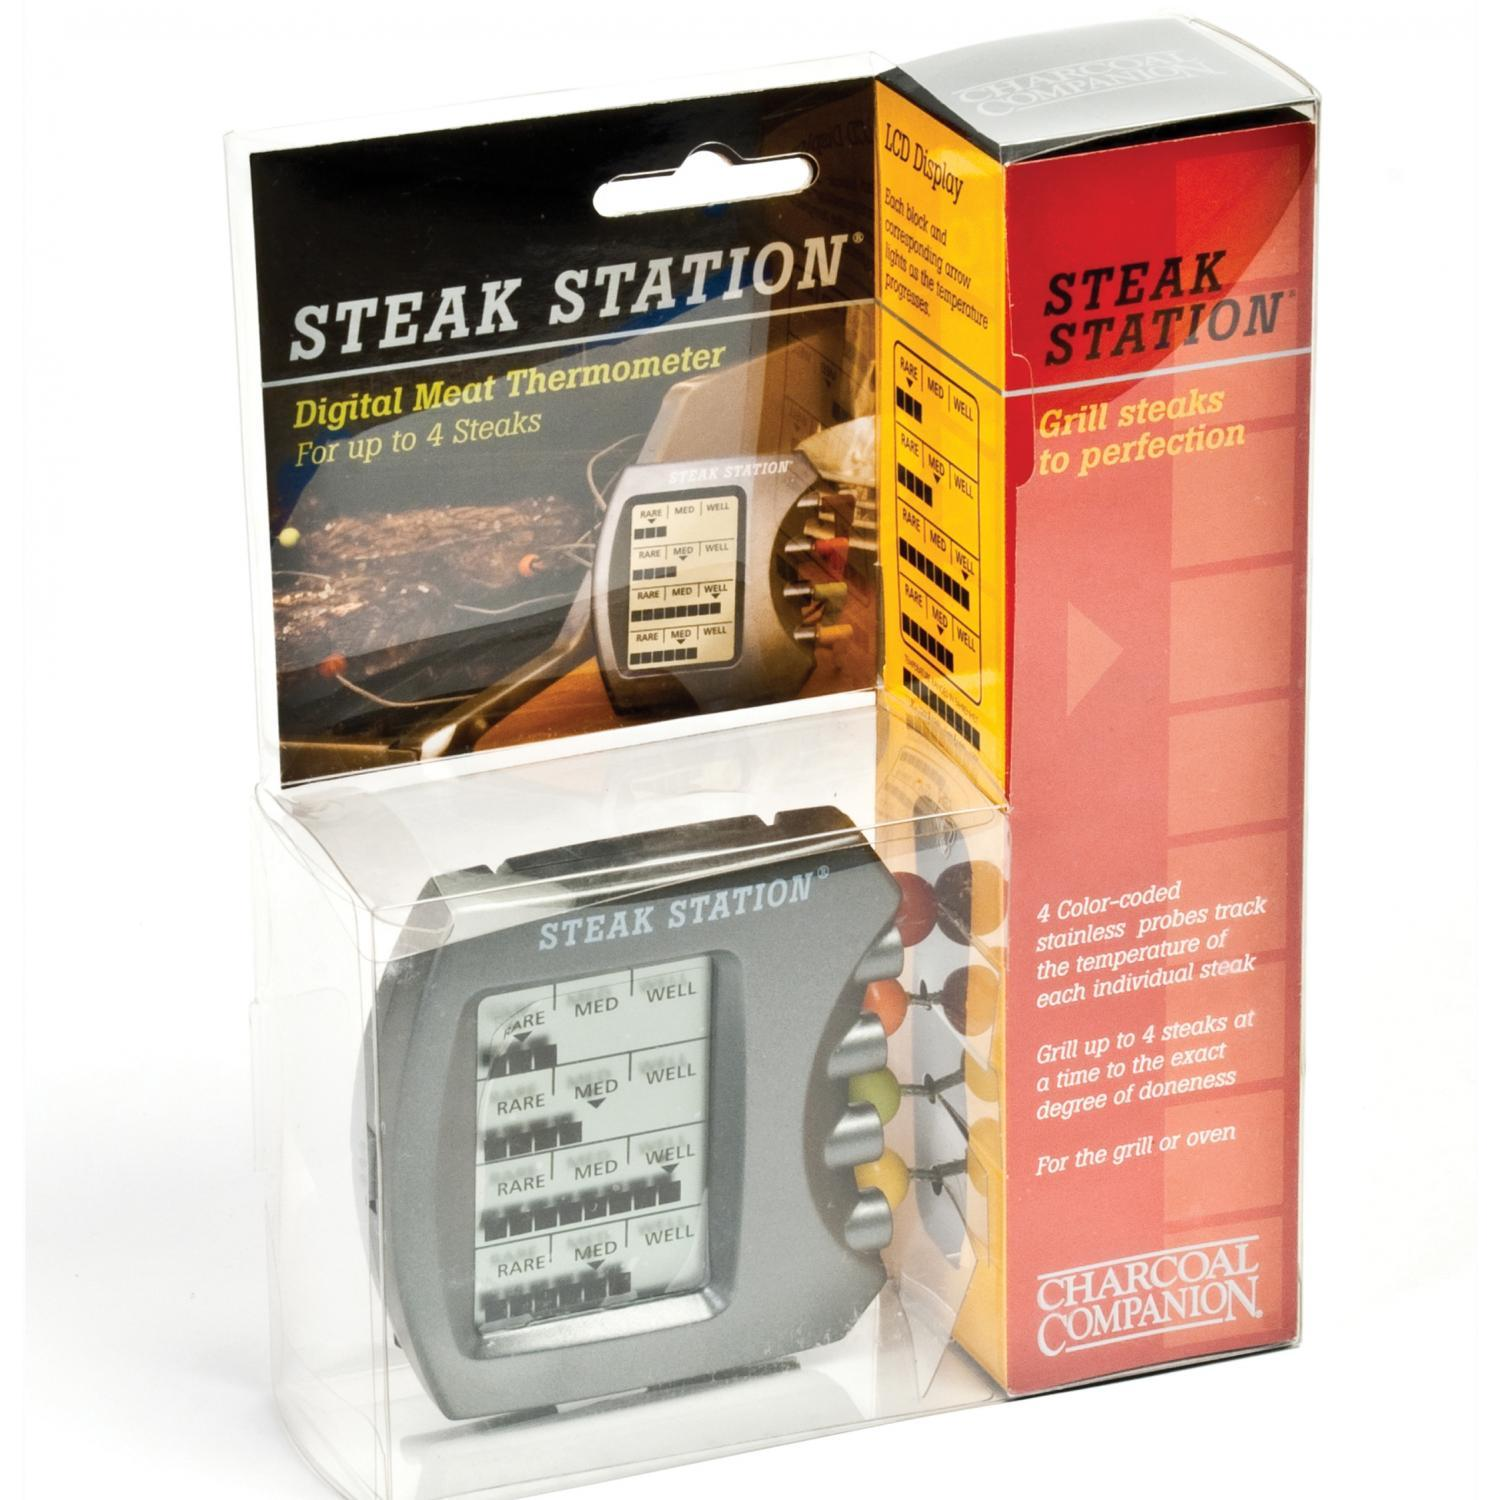 Steak Station Digital Meat Thermometer Charcoal Companion Steak ...